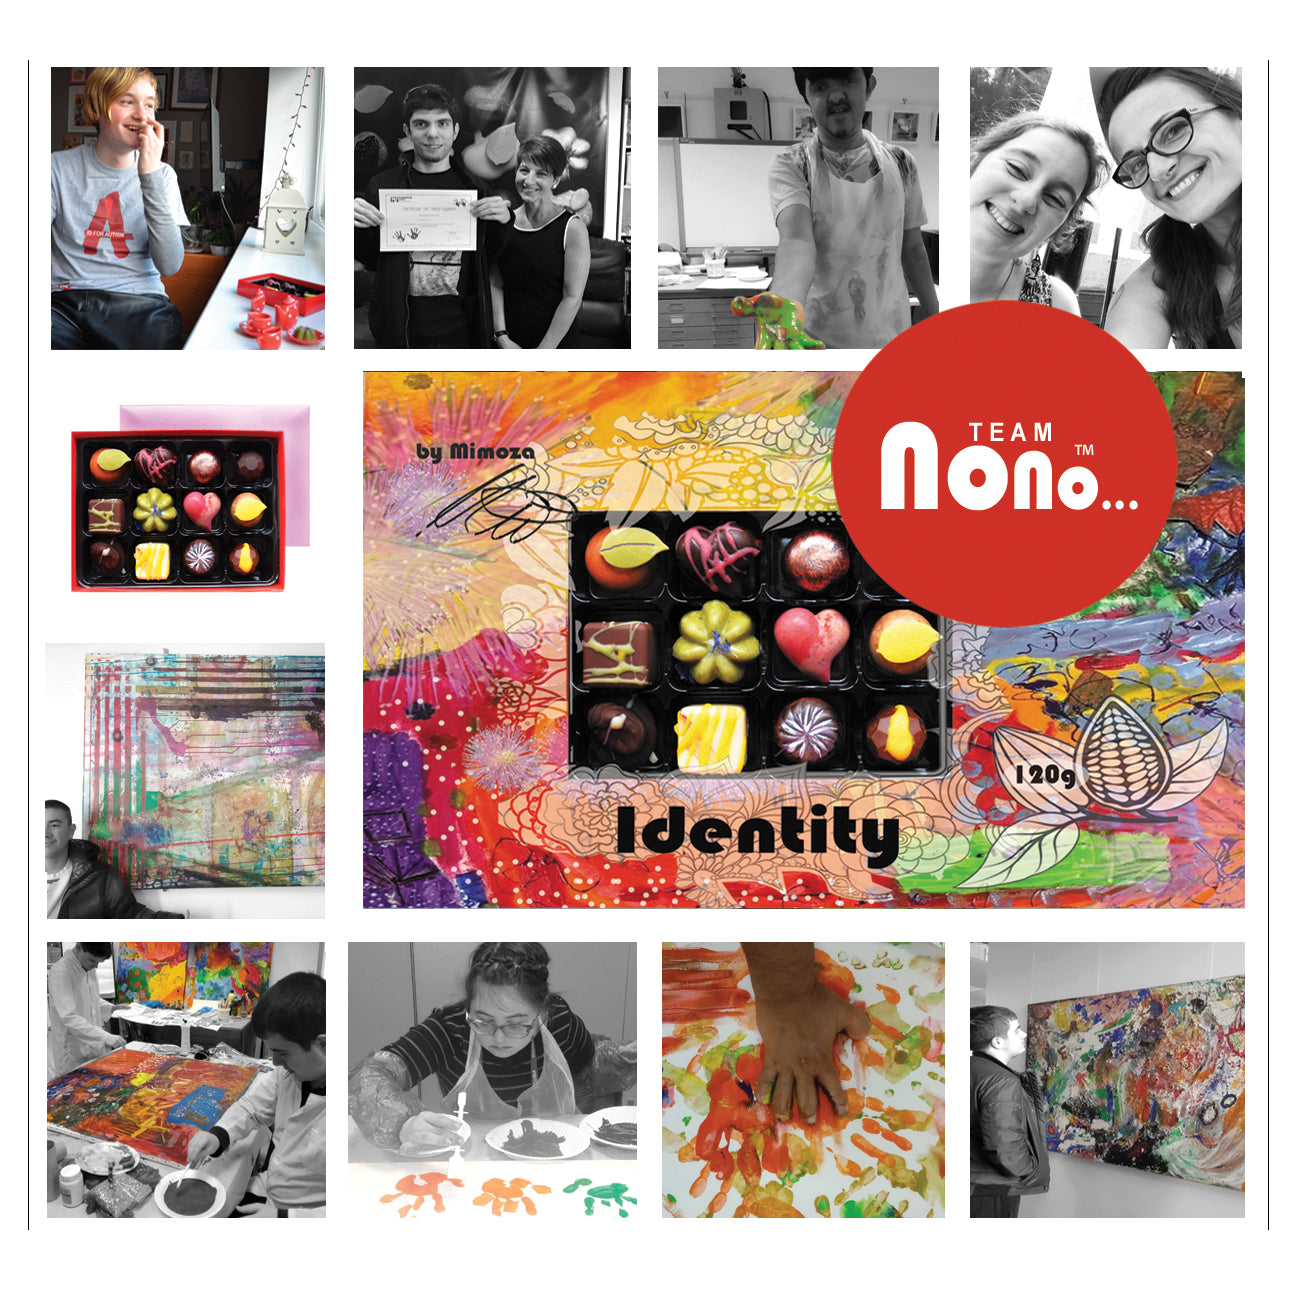 Team Nono's - Identity - Charity - Vegan Chocolate Box